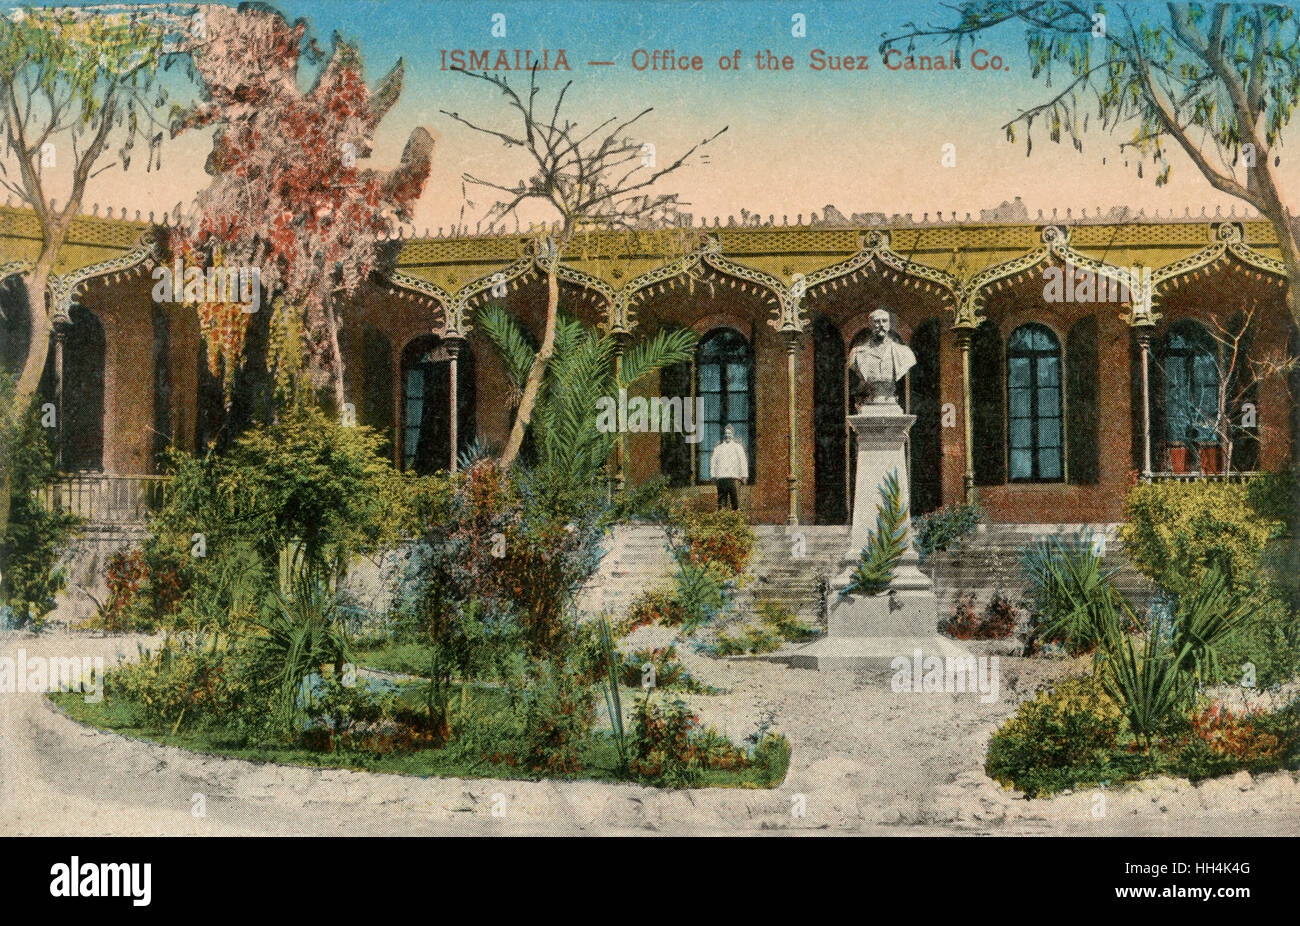 Garden of the office of the Suez Canal Company in Ismailia, a city in north-eastern Egypt. The Suez Canal Company - Stock Image